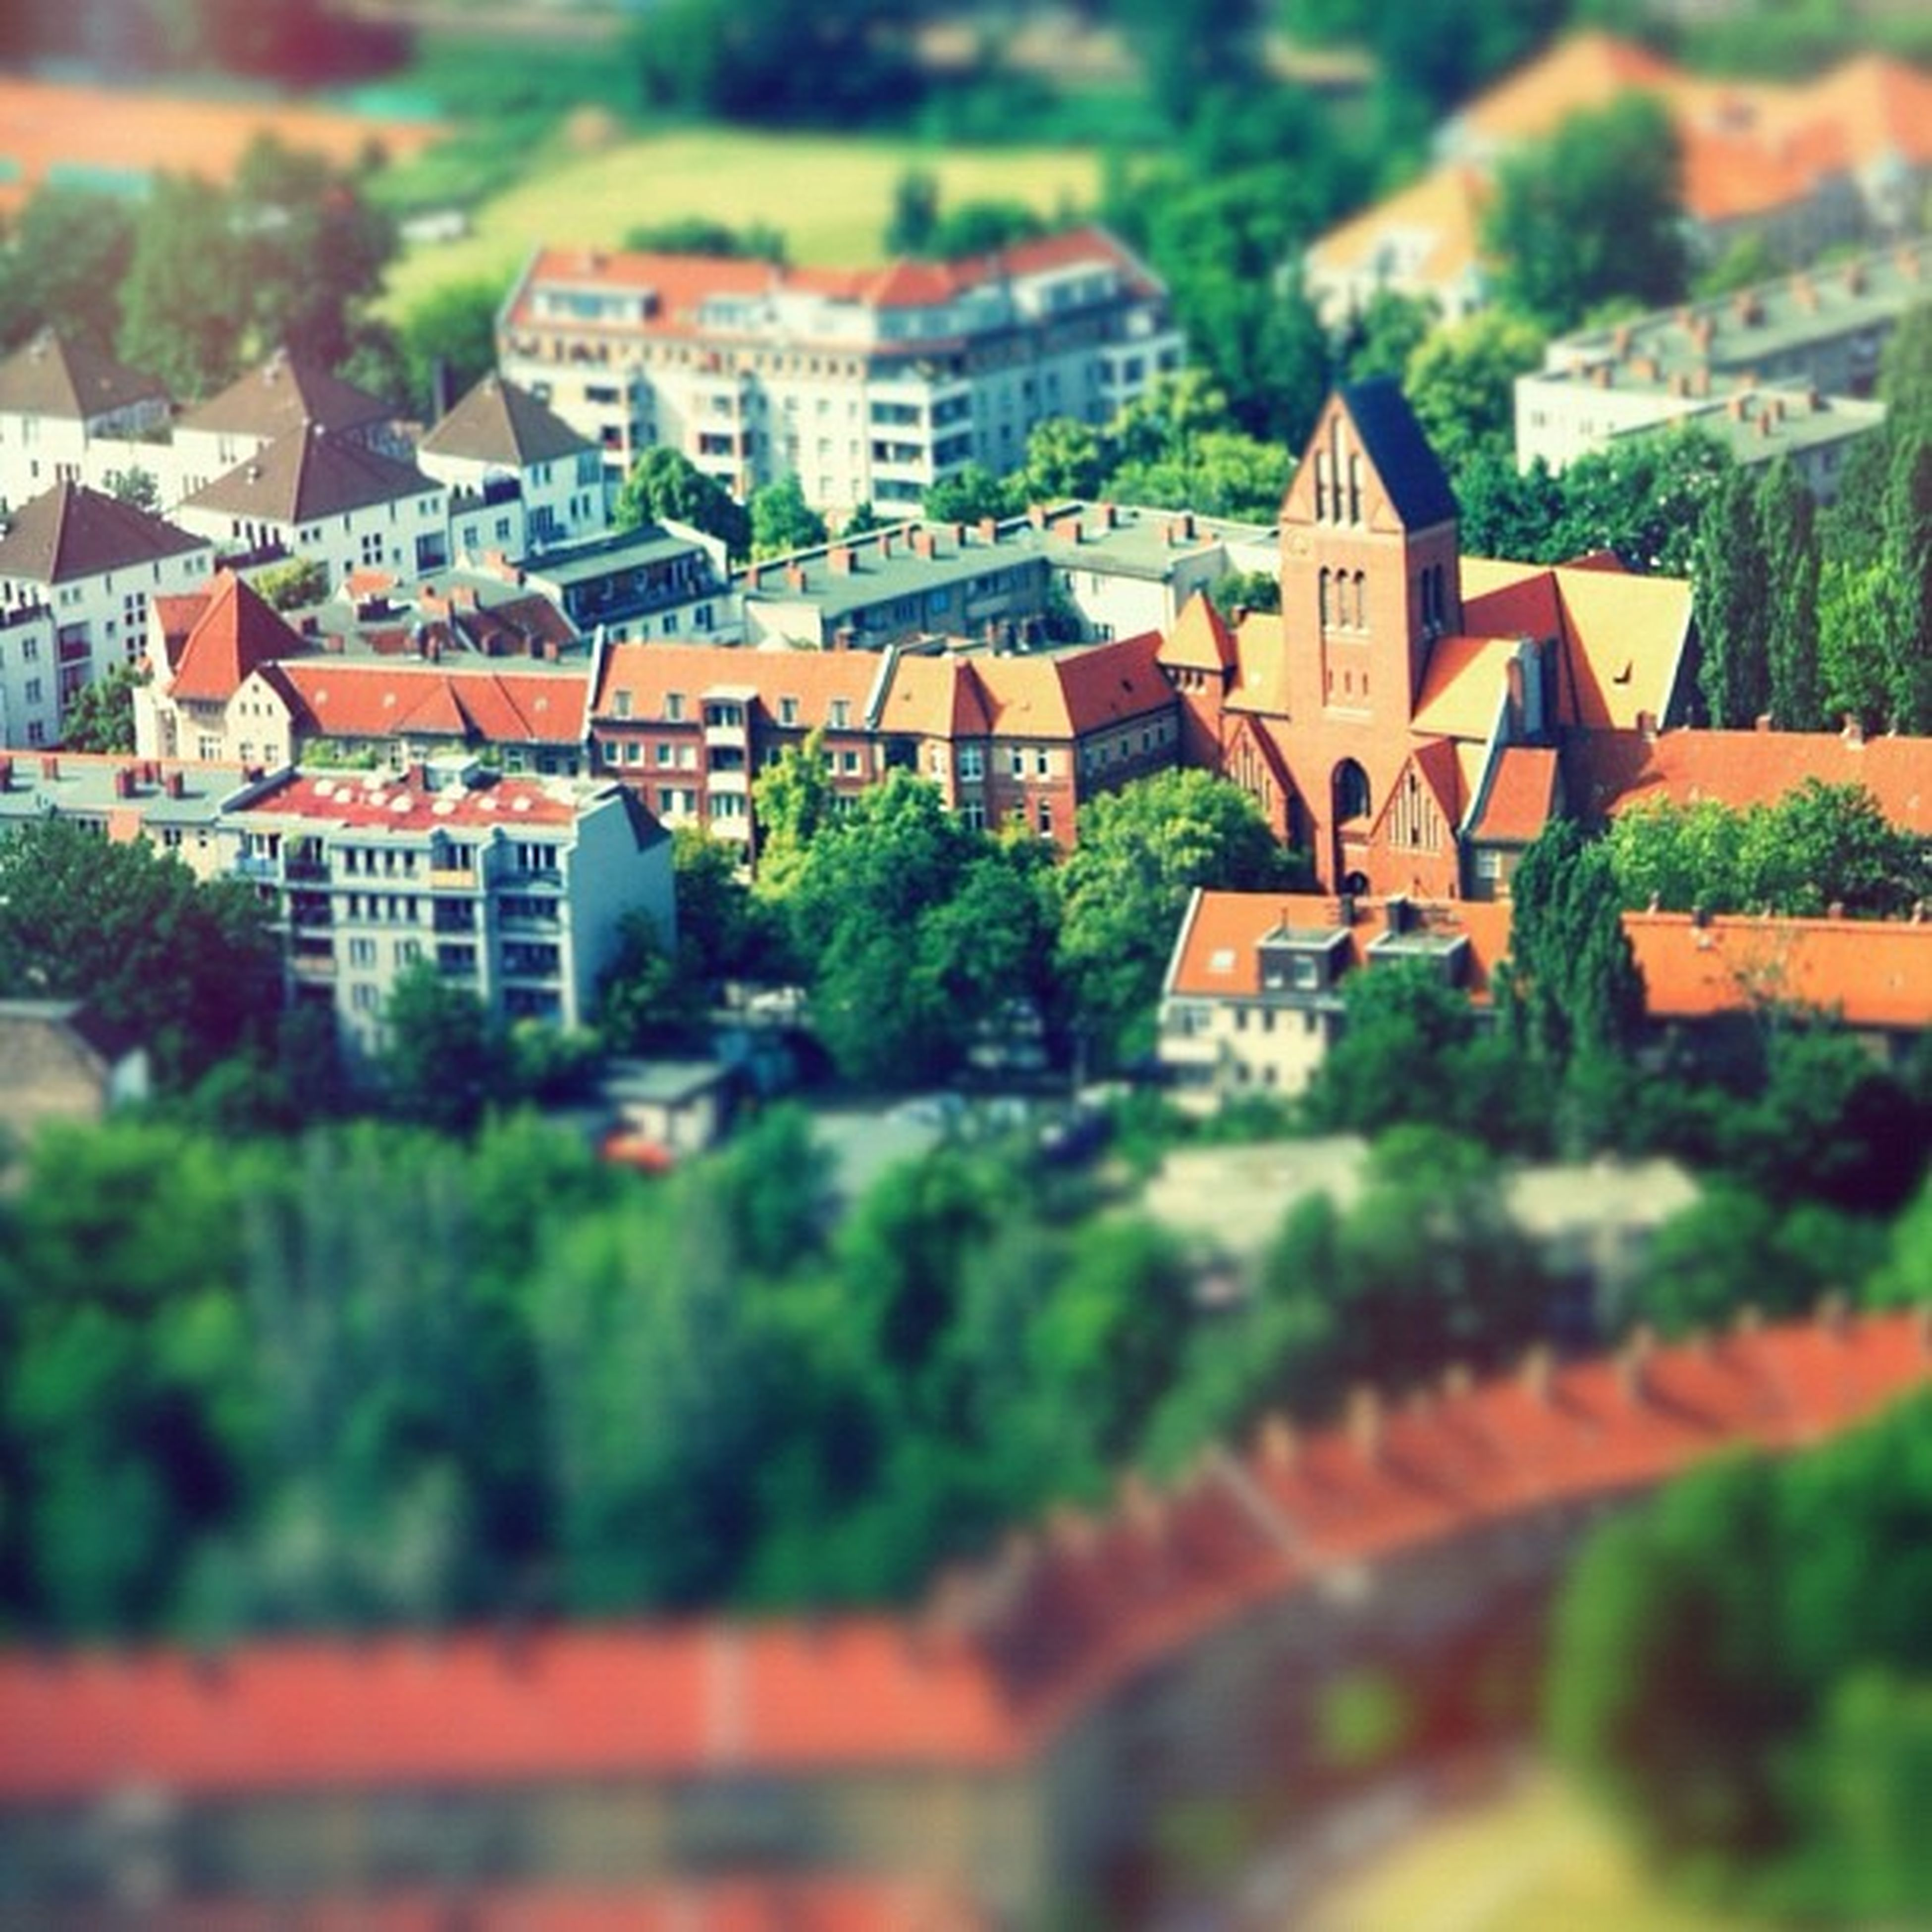 building exterior, architecture, built structure, house, residential structure, residential building, roof, tree, residential district, high angle view, town, growth, city, day, outdoors, townscape, no people, green color, selective focus, plant